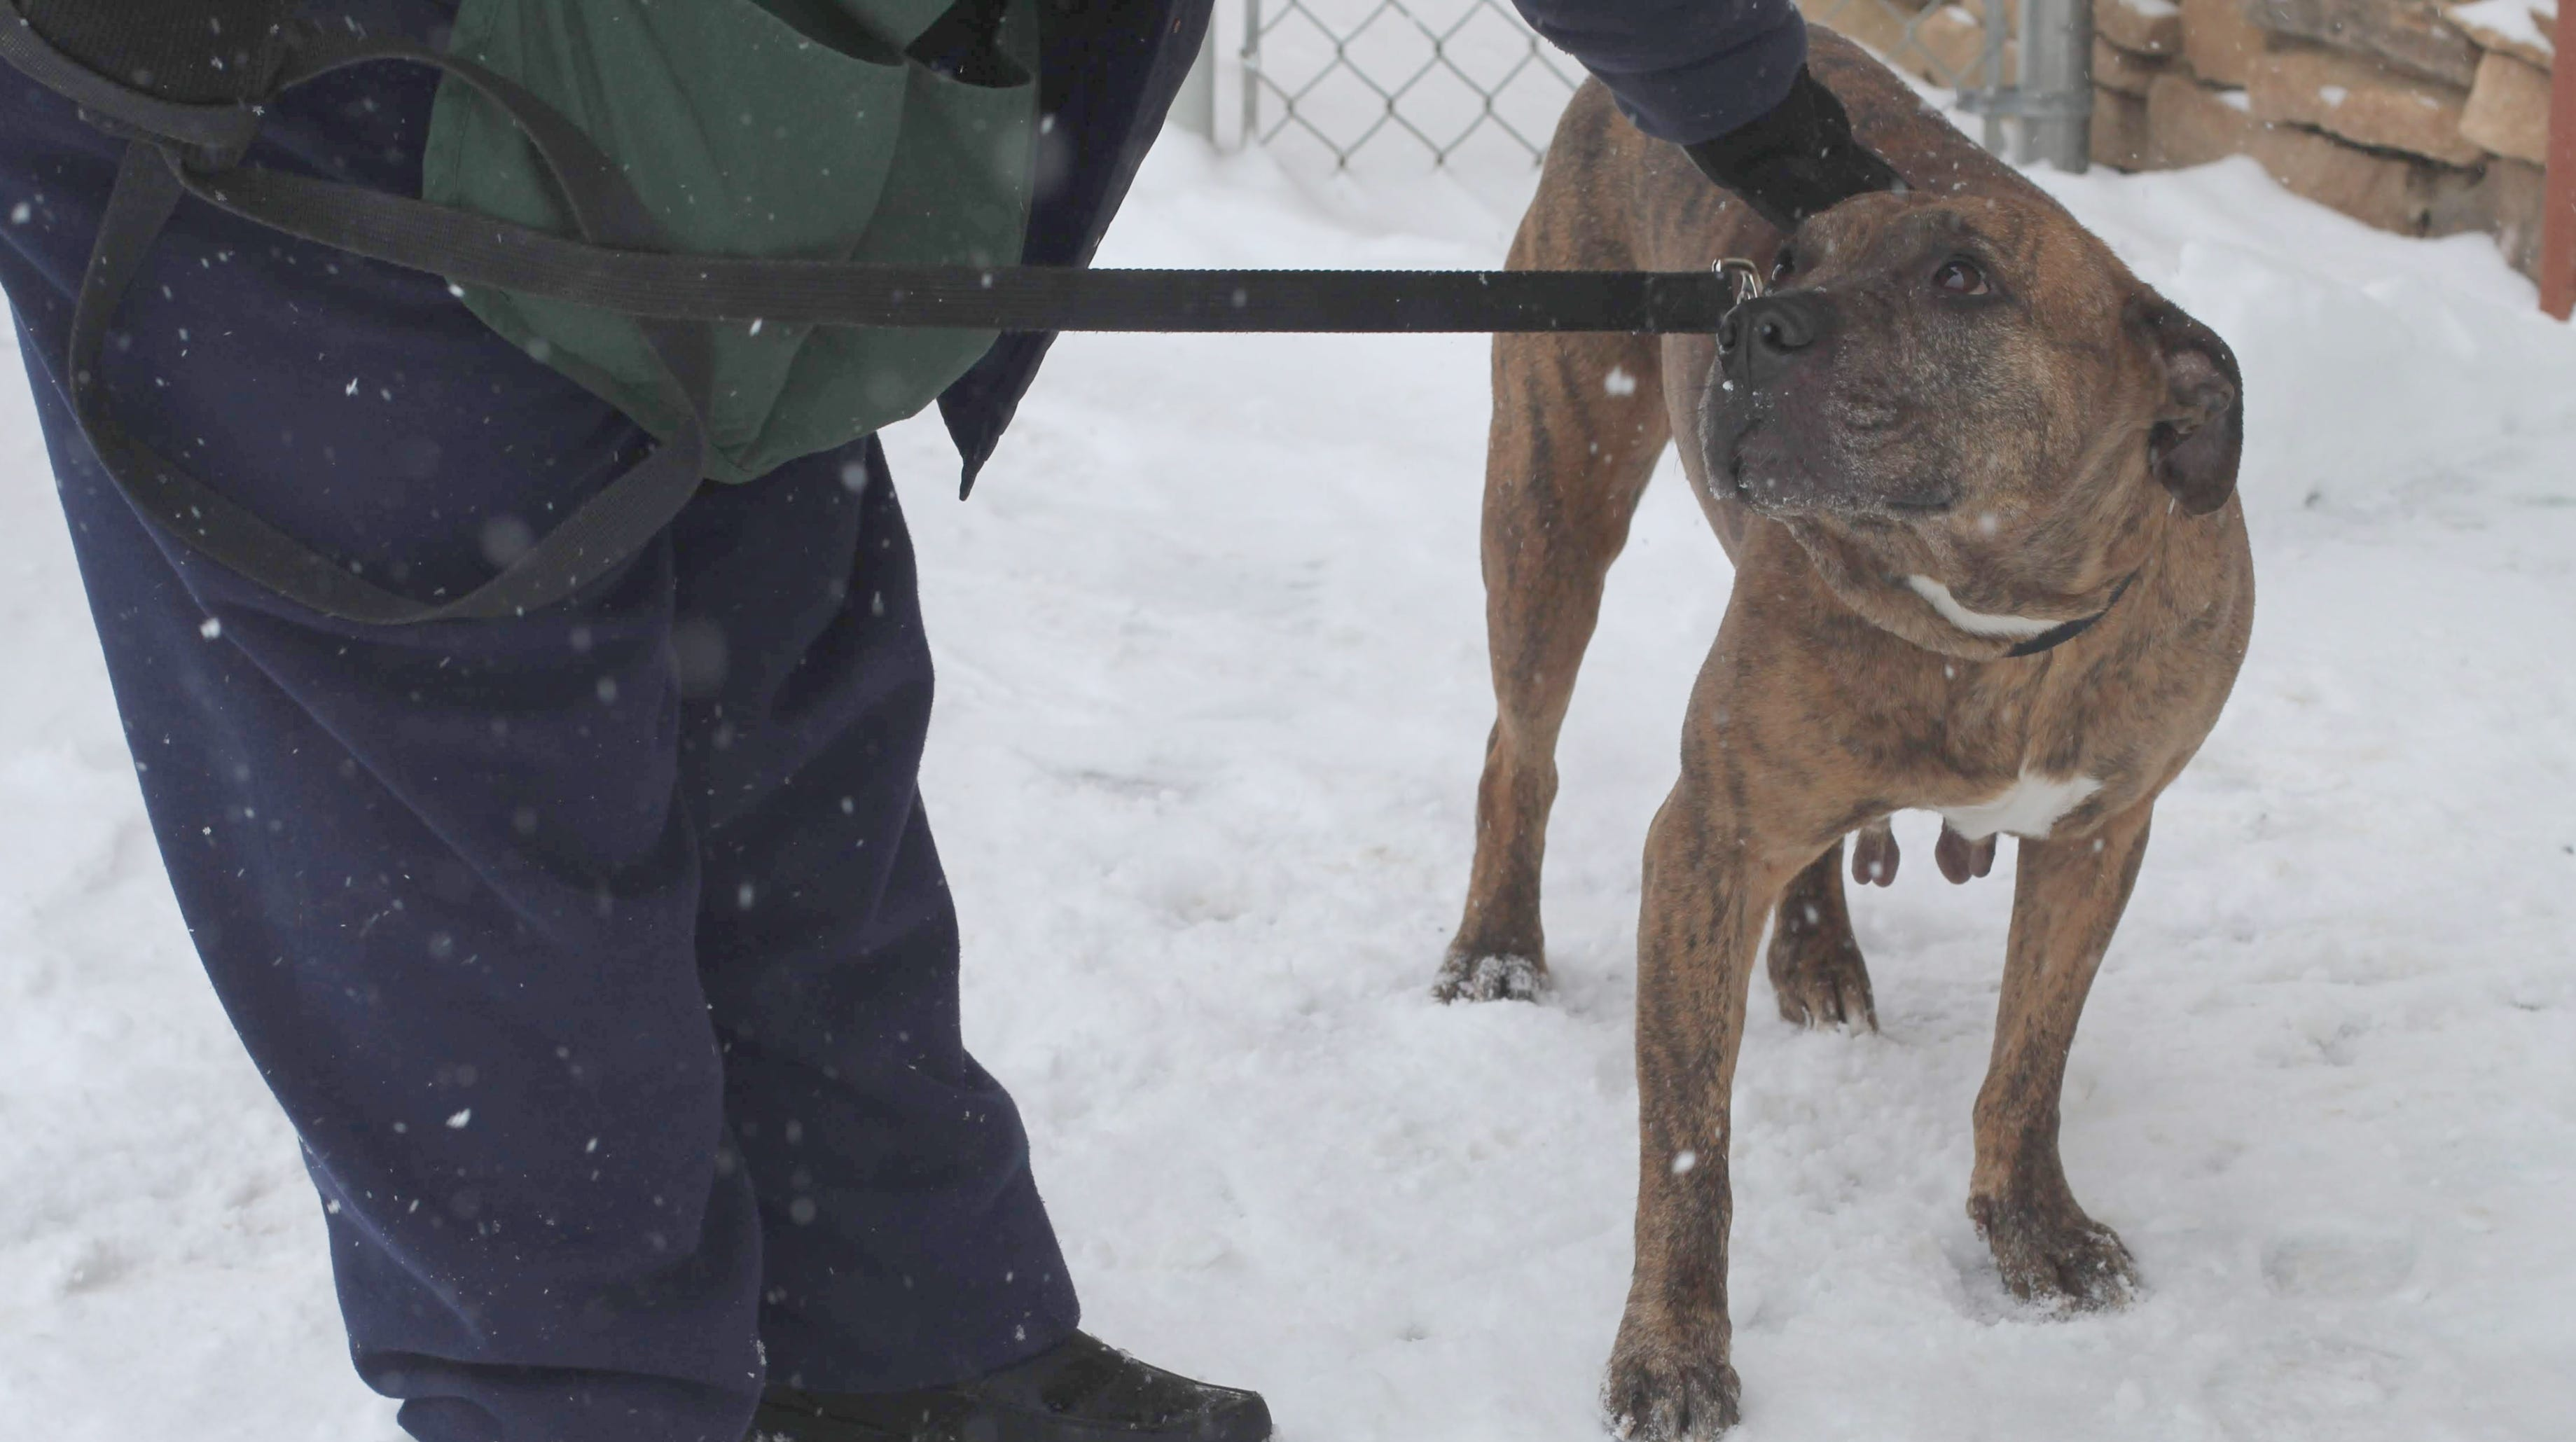 Volunteer dog walkers help during snowstorm at Lollypop Farm